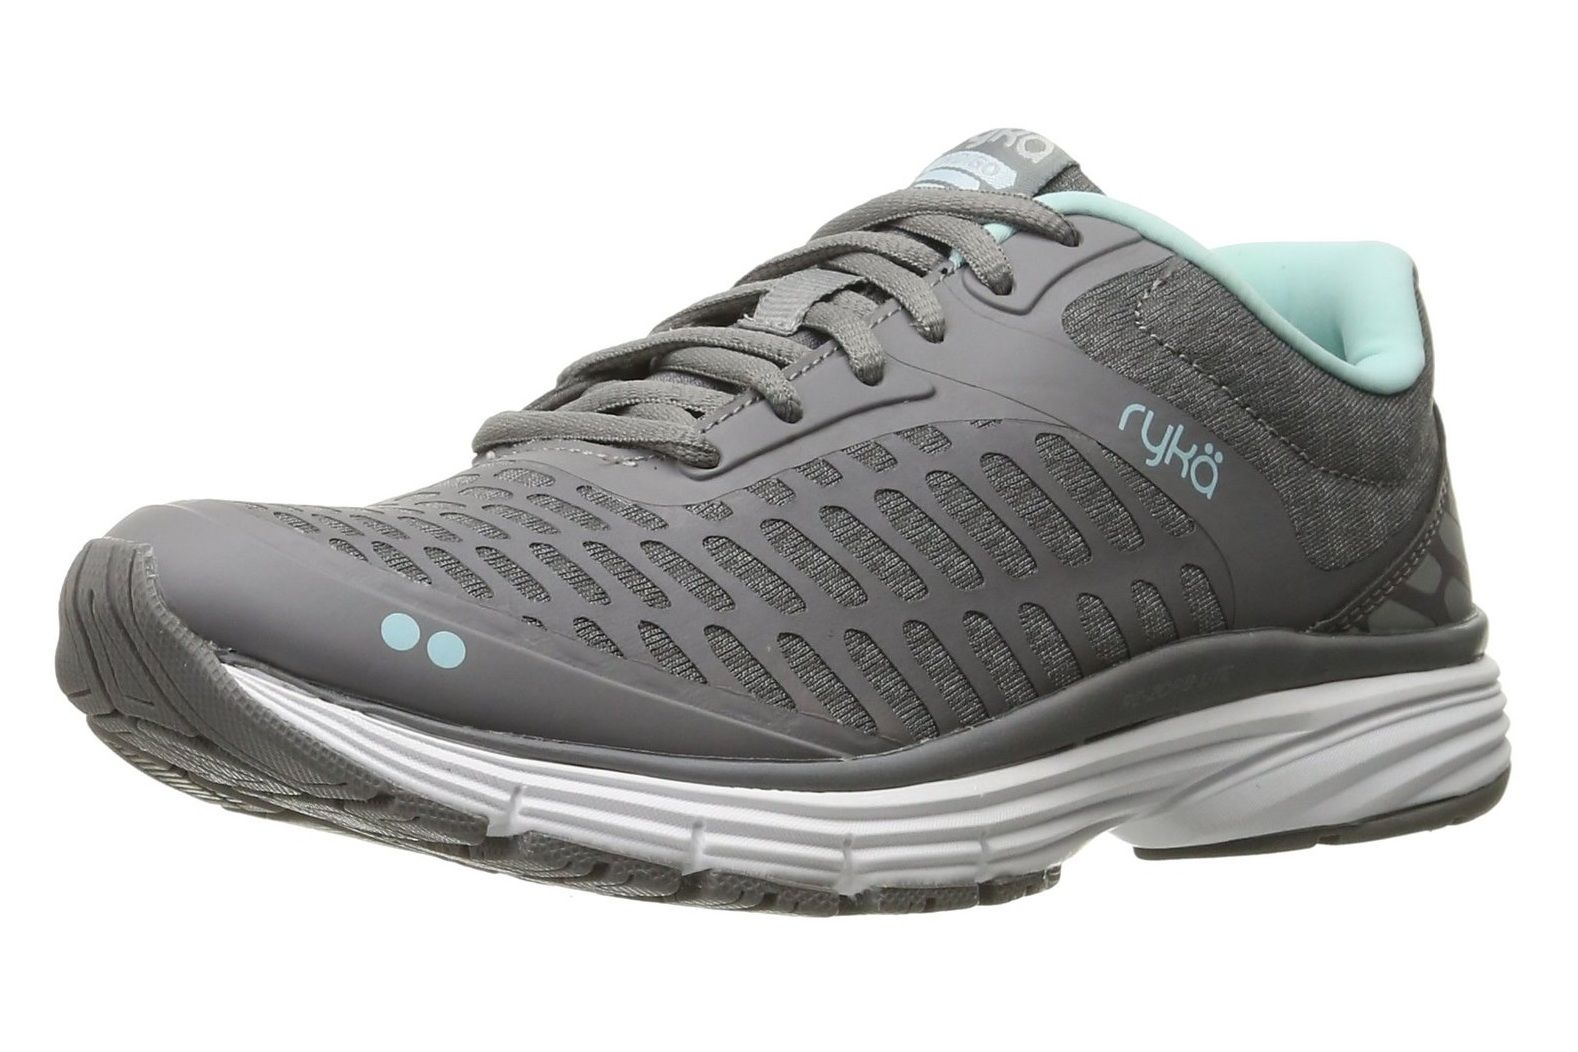 65b1ff9358d3d The 7 Best Performance Walking Shoes of 2019